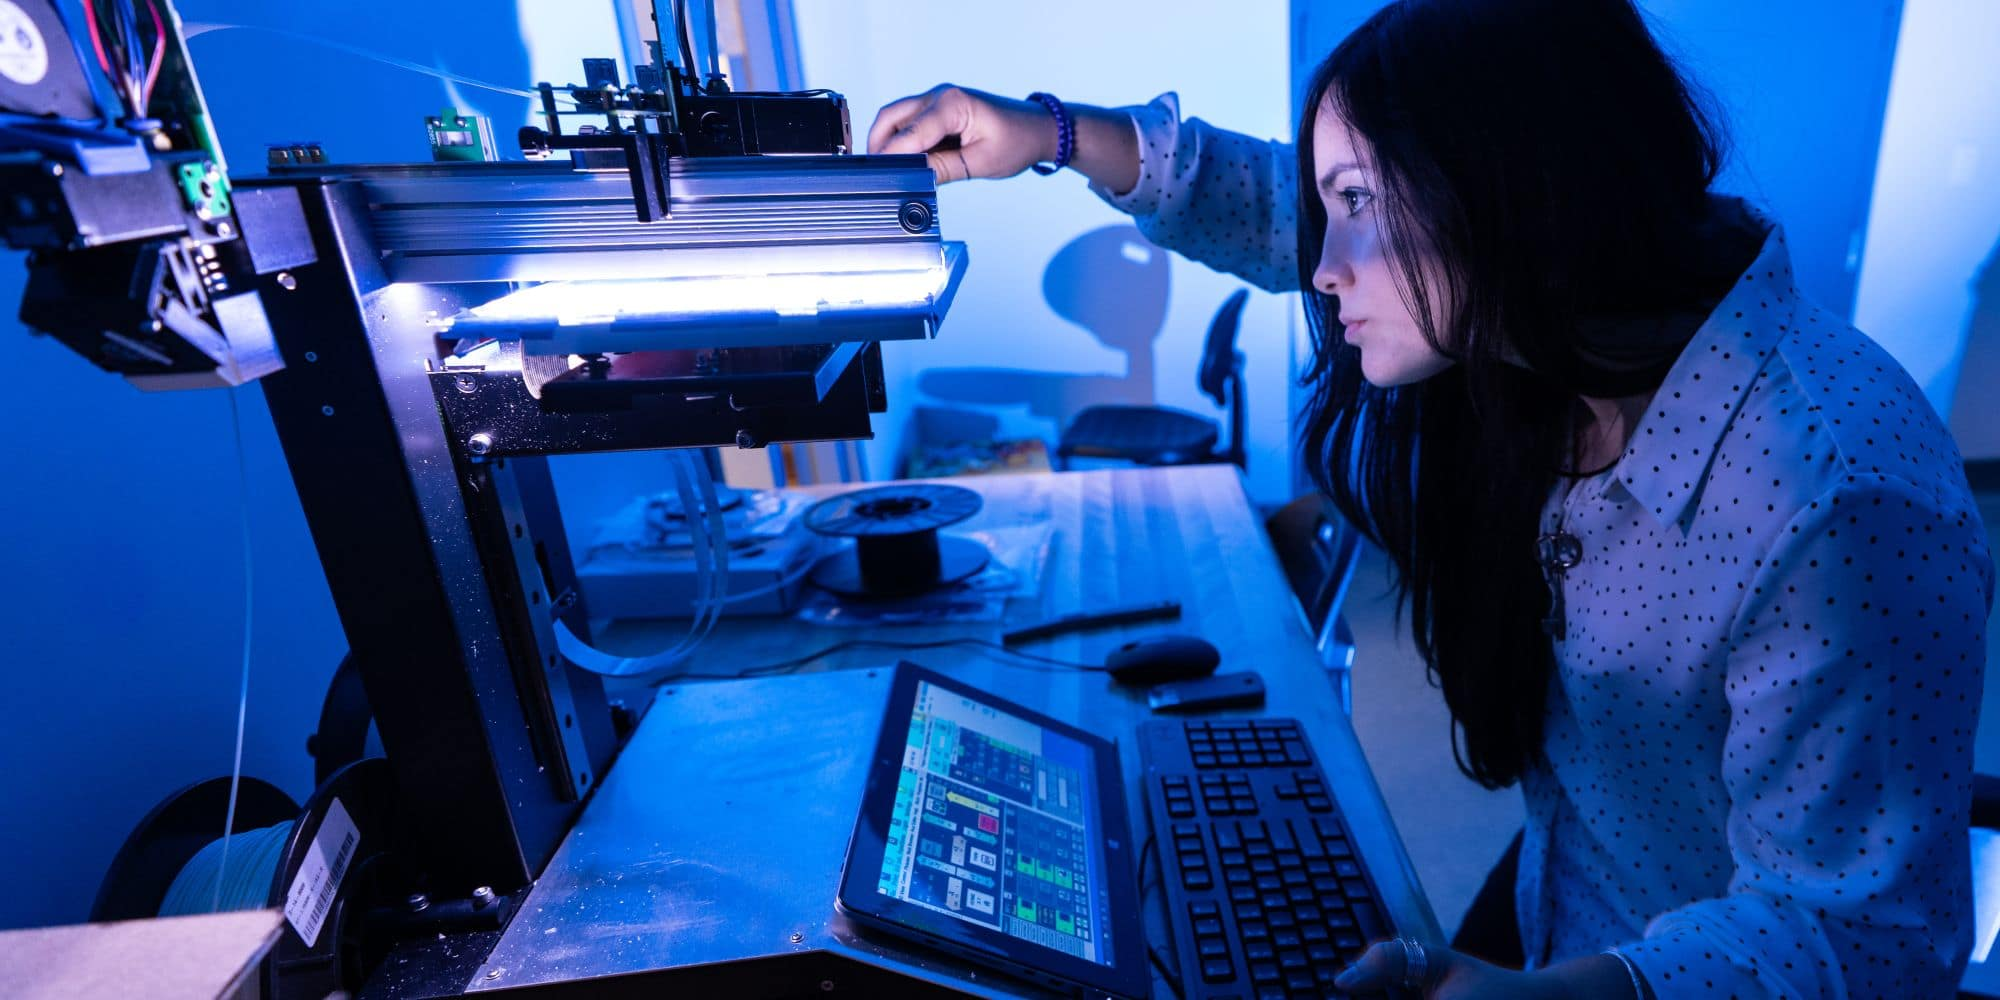 Embry-Riddle Graduate Student Noemi Miguelez works in the parts manufacturing section of the WiDE lab at the MicaPlex